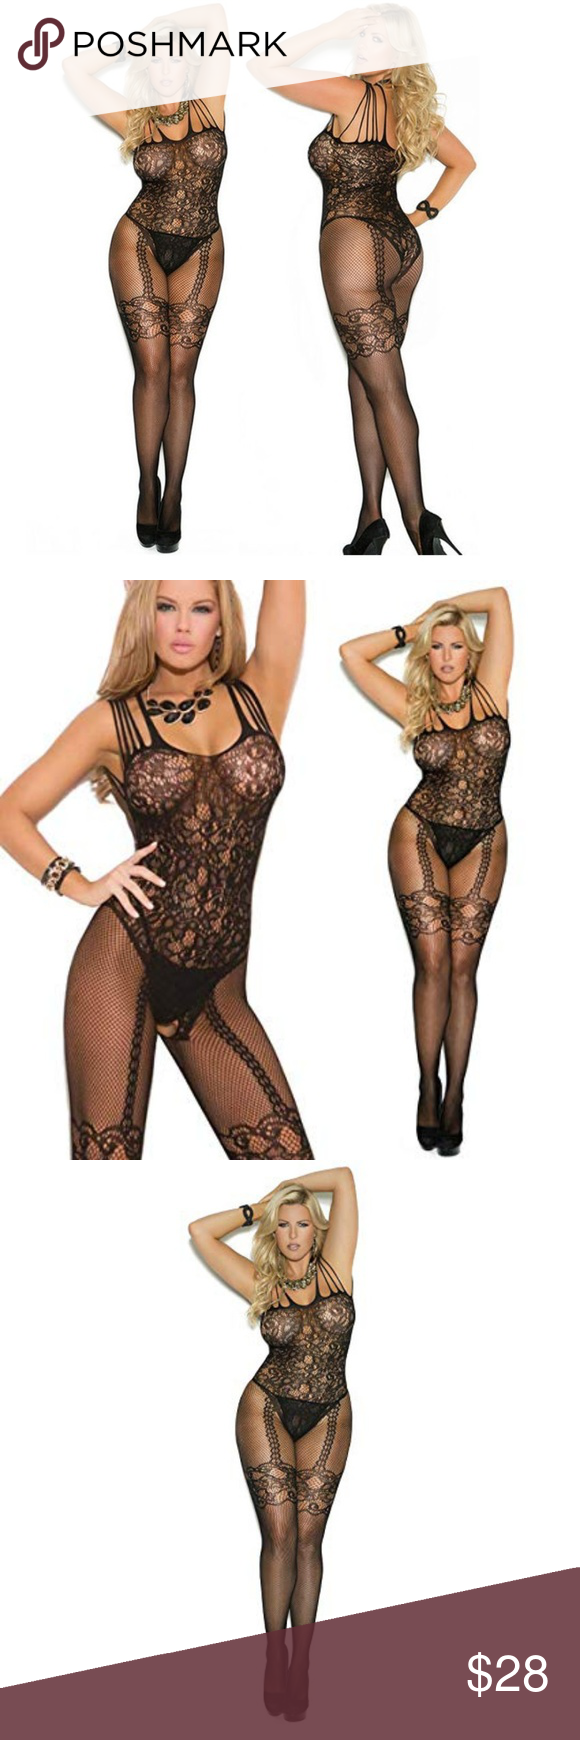 a3be3afb8be PLUS Sexy Black Sheer Lace Body Stocking You ll never think of bedtime the  same